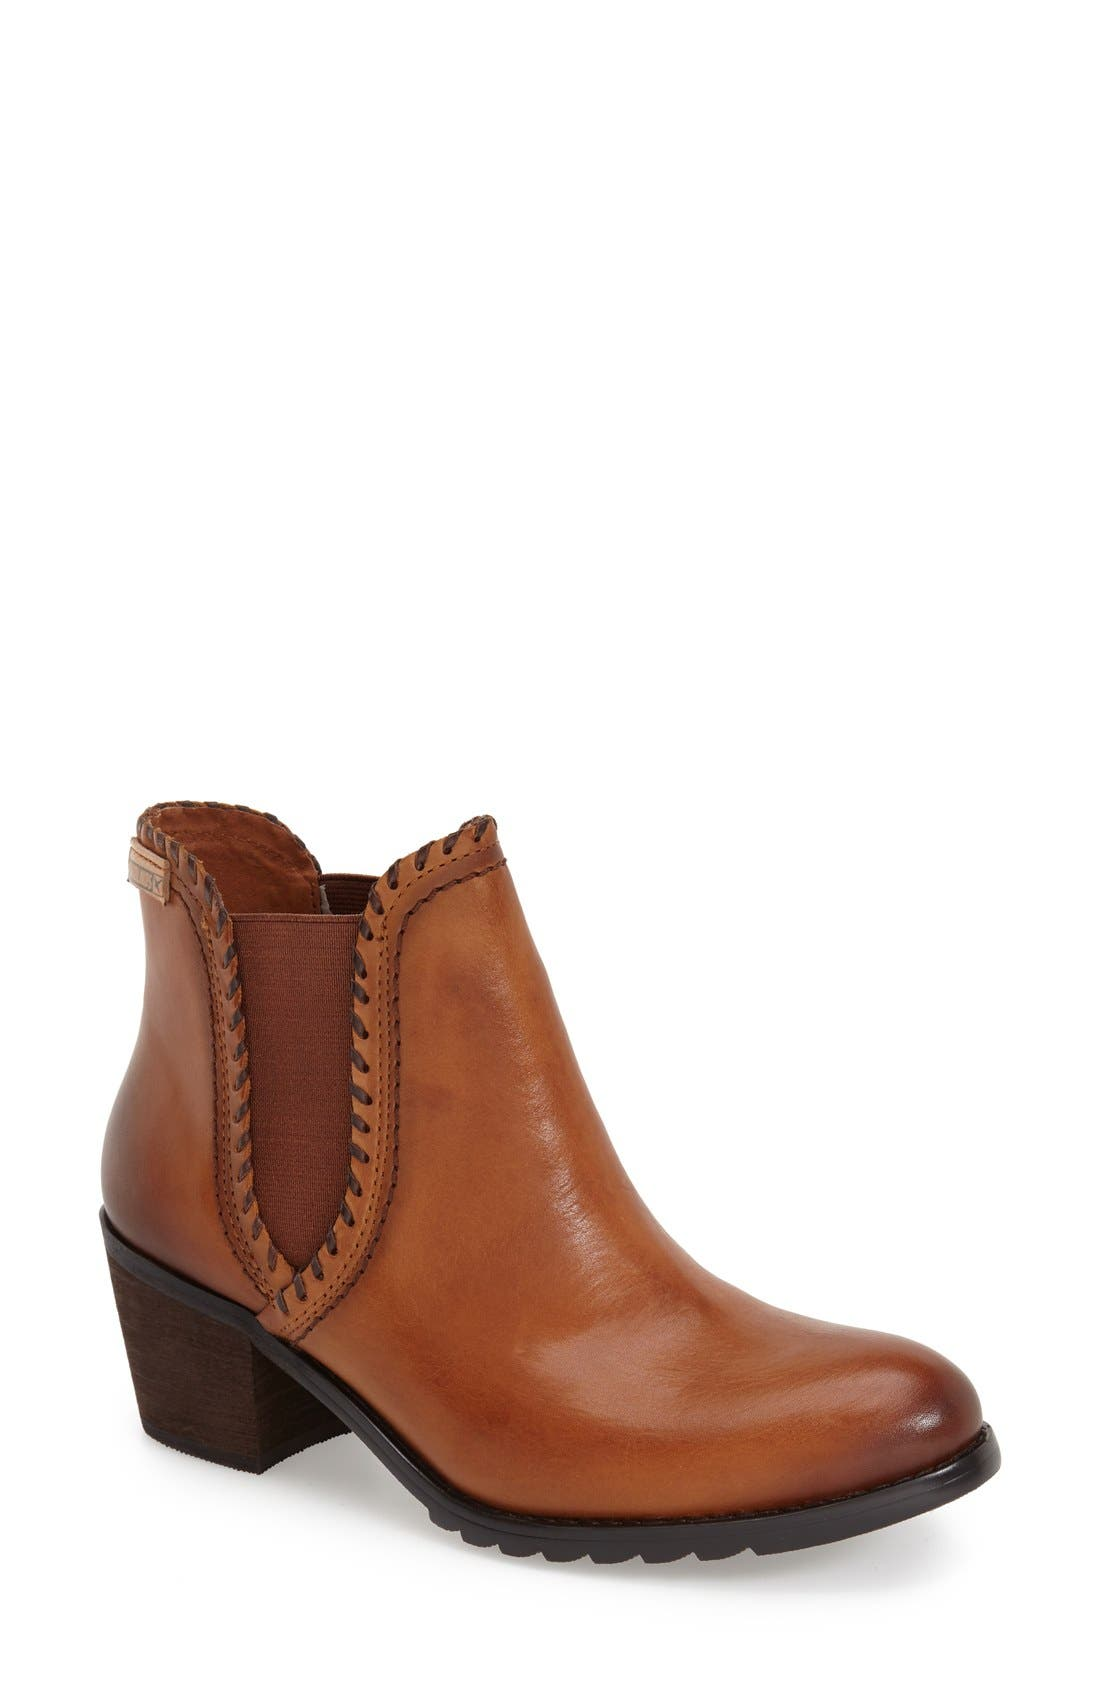 'Andorra' Water Resistant Bootie,                             Main thumbnail 1, color,                             Brandy Leather